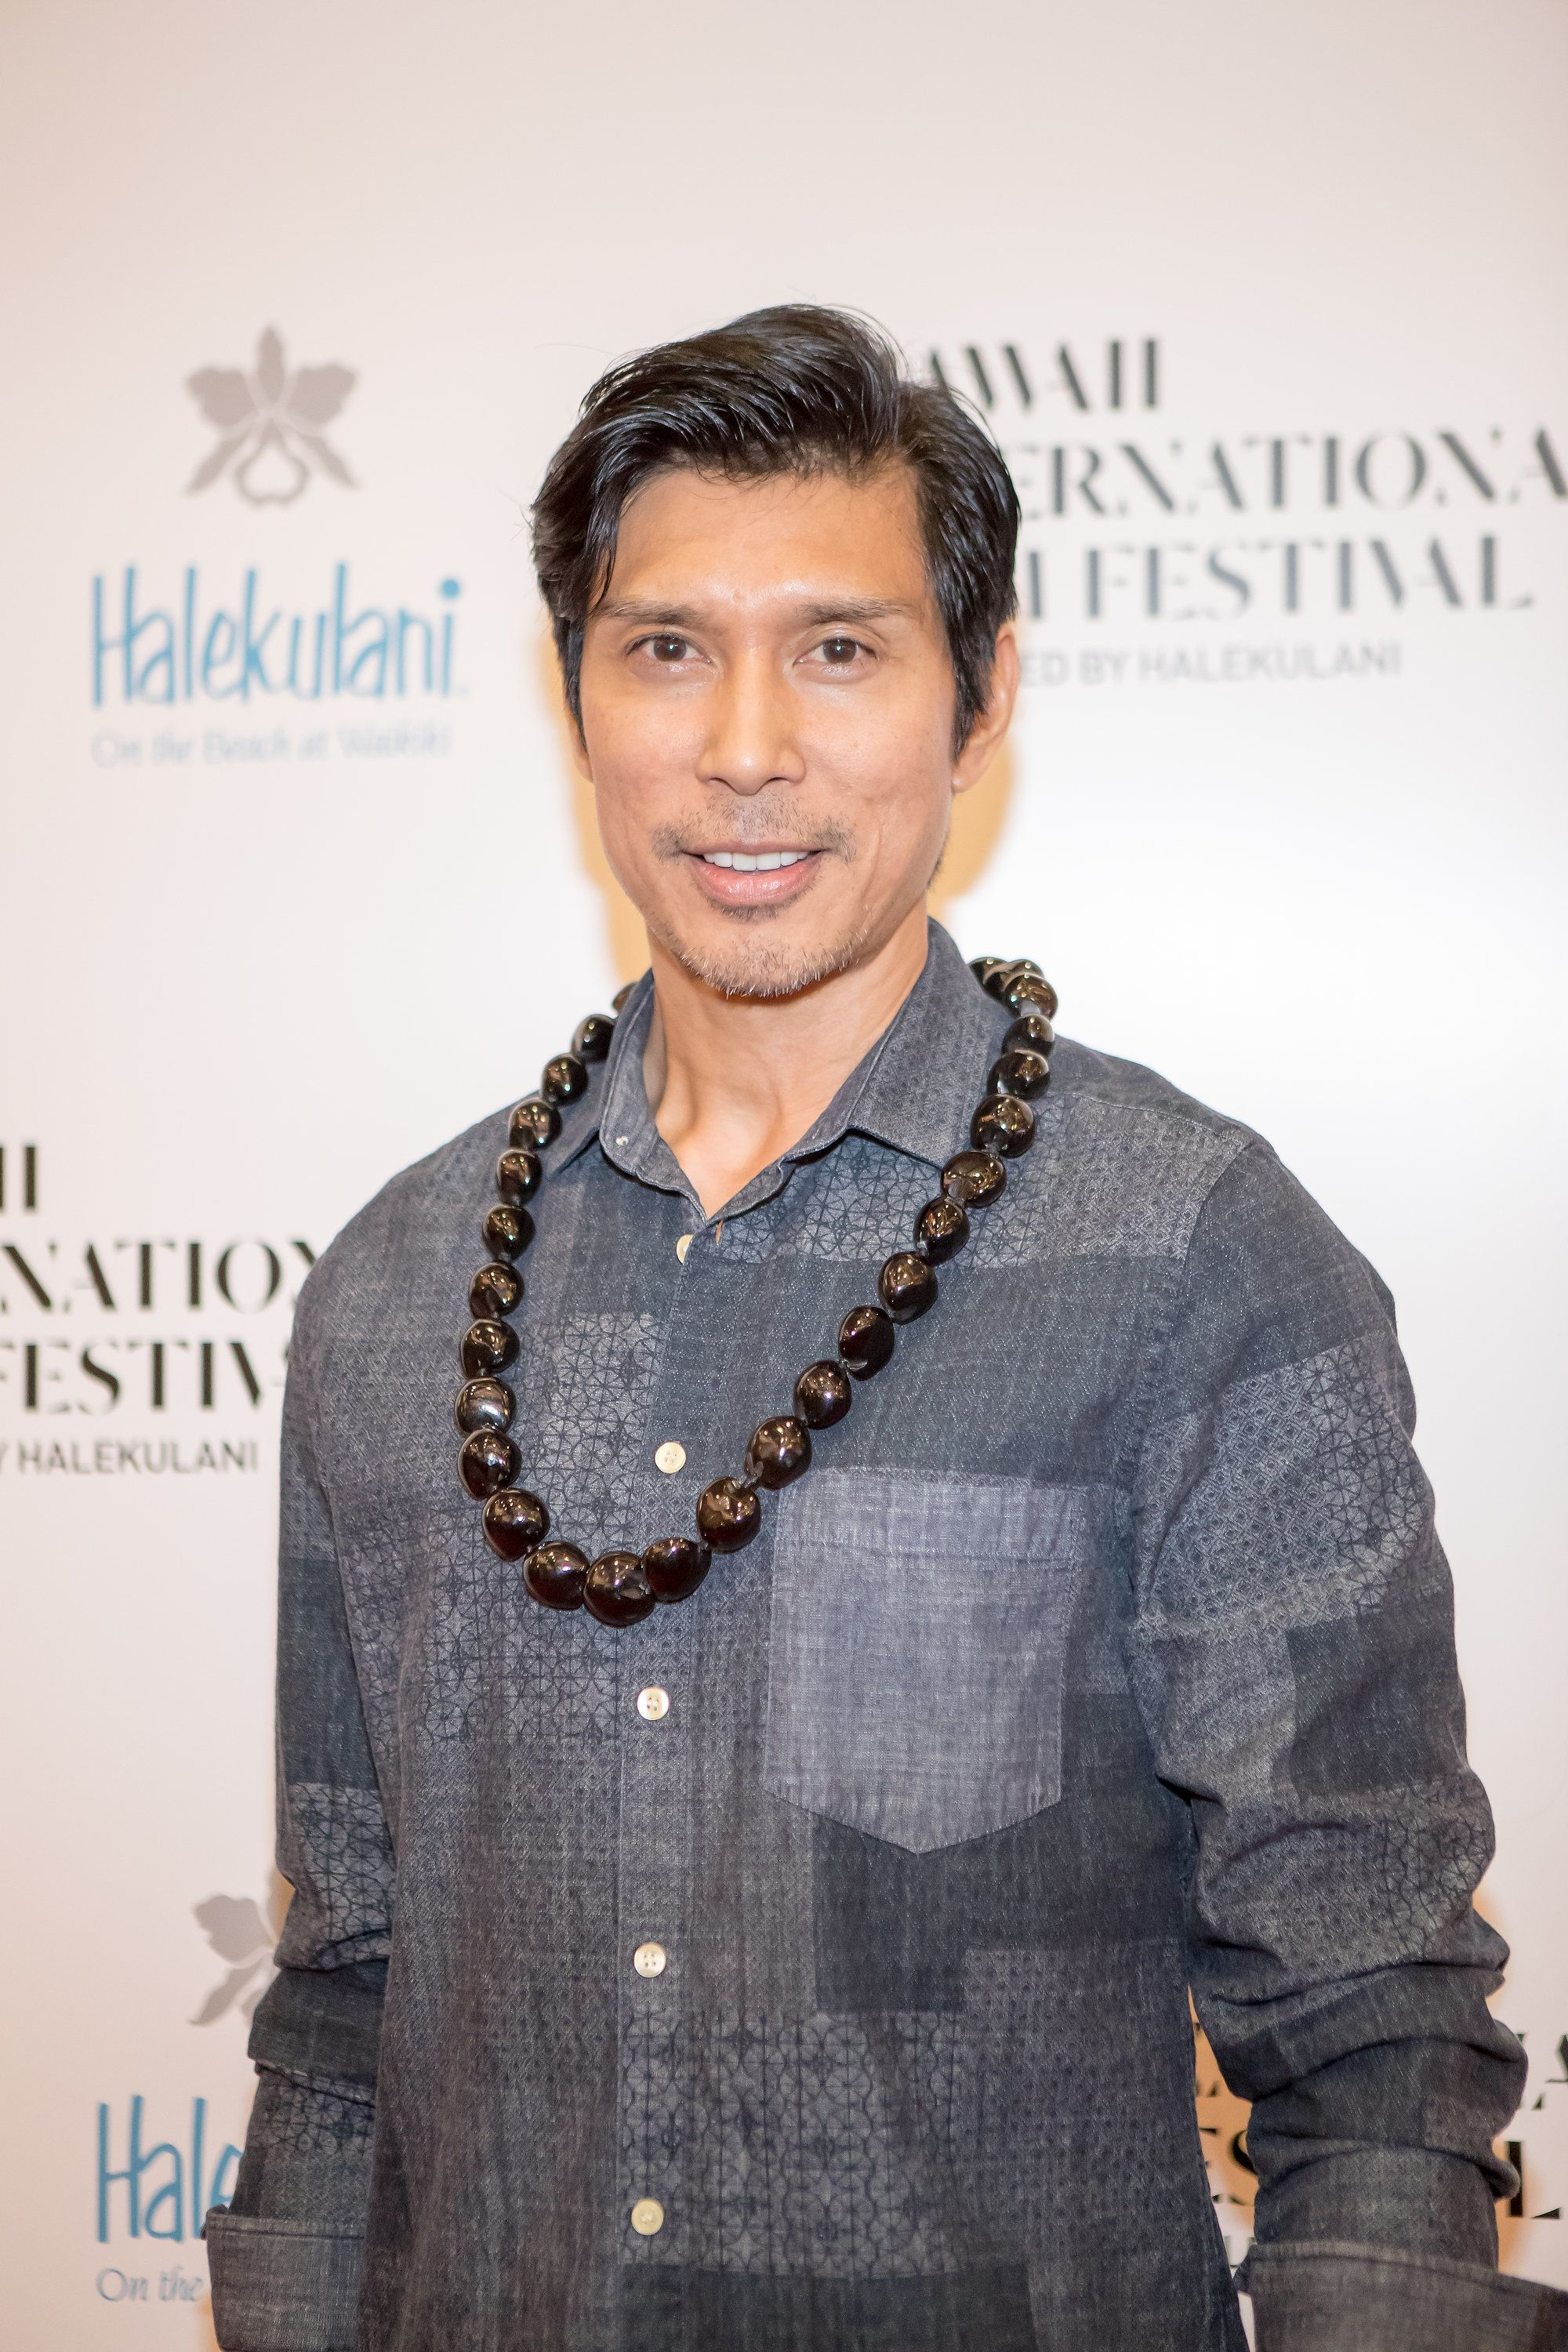 HONOLULU, HI - NOVEMBER 04: Director Keo Woolford arrives for the screening of his short film 'Song On Canvis' at the 2016 Hawaii International Film Festival at the Regal Dole Cannery Stadium 18 on November 4, 2016 in Honolulu, Hawaii. (Photo by Darryl Oumi/WireImage)